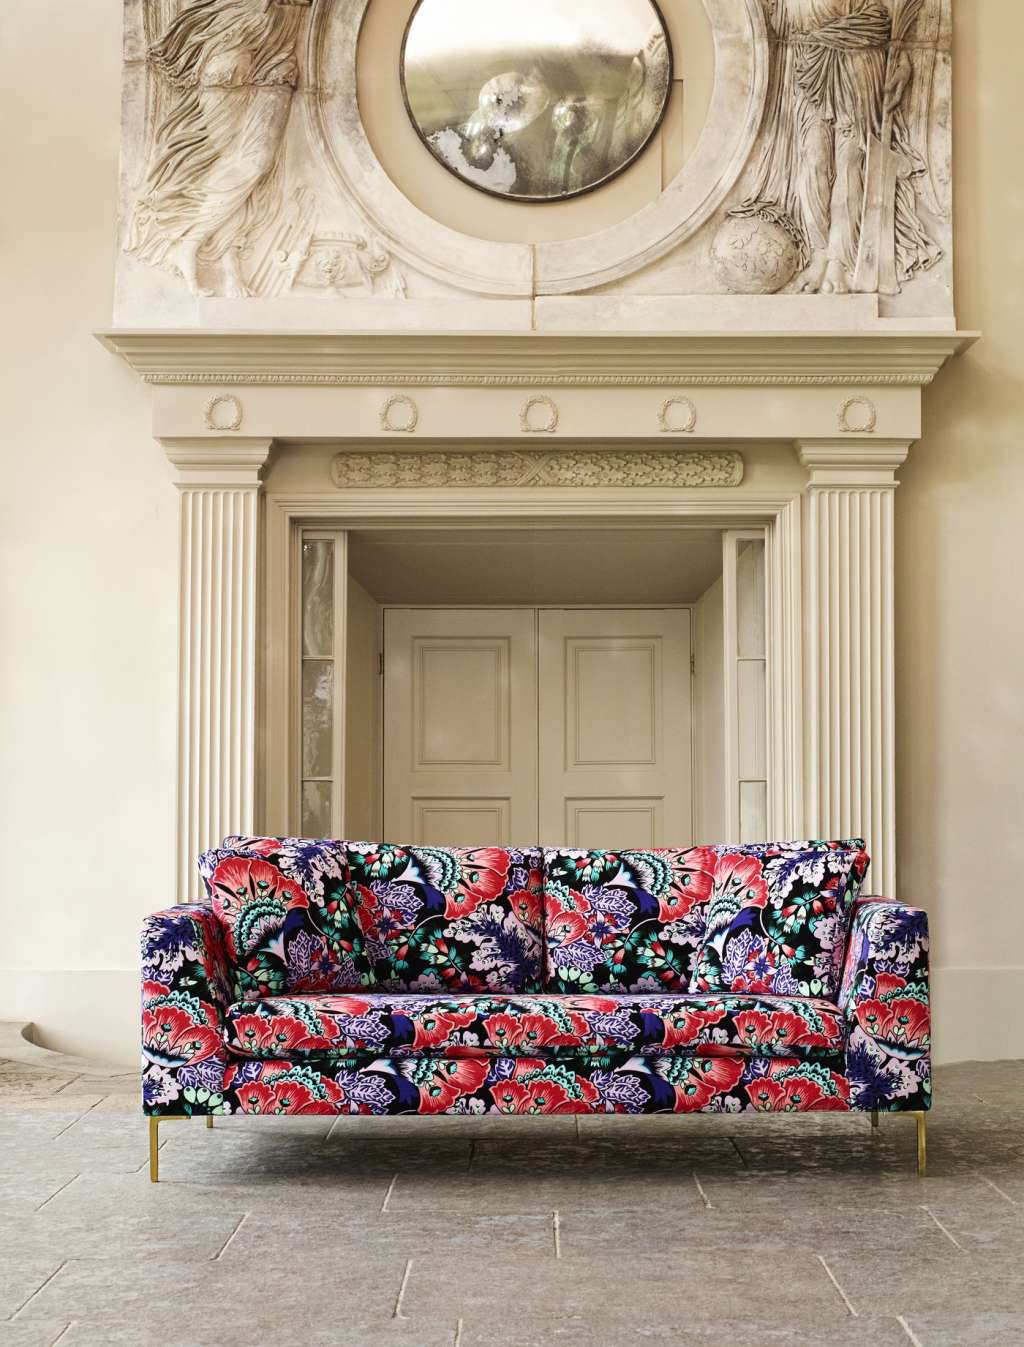 Anthropologies latest furniture collab with liberty of london is bold floral perfection 0a14b8de7ba631b963ff91804092c04eef4a504f